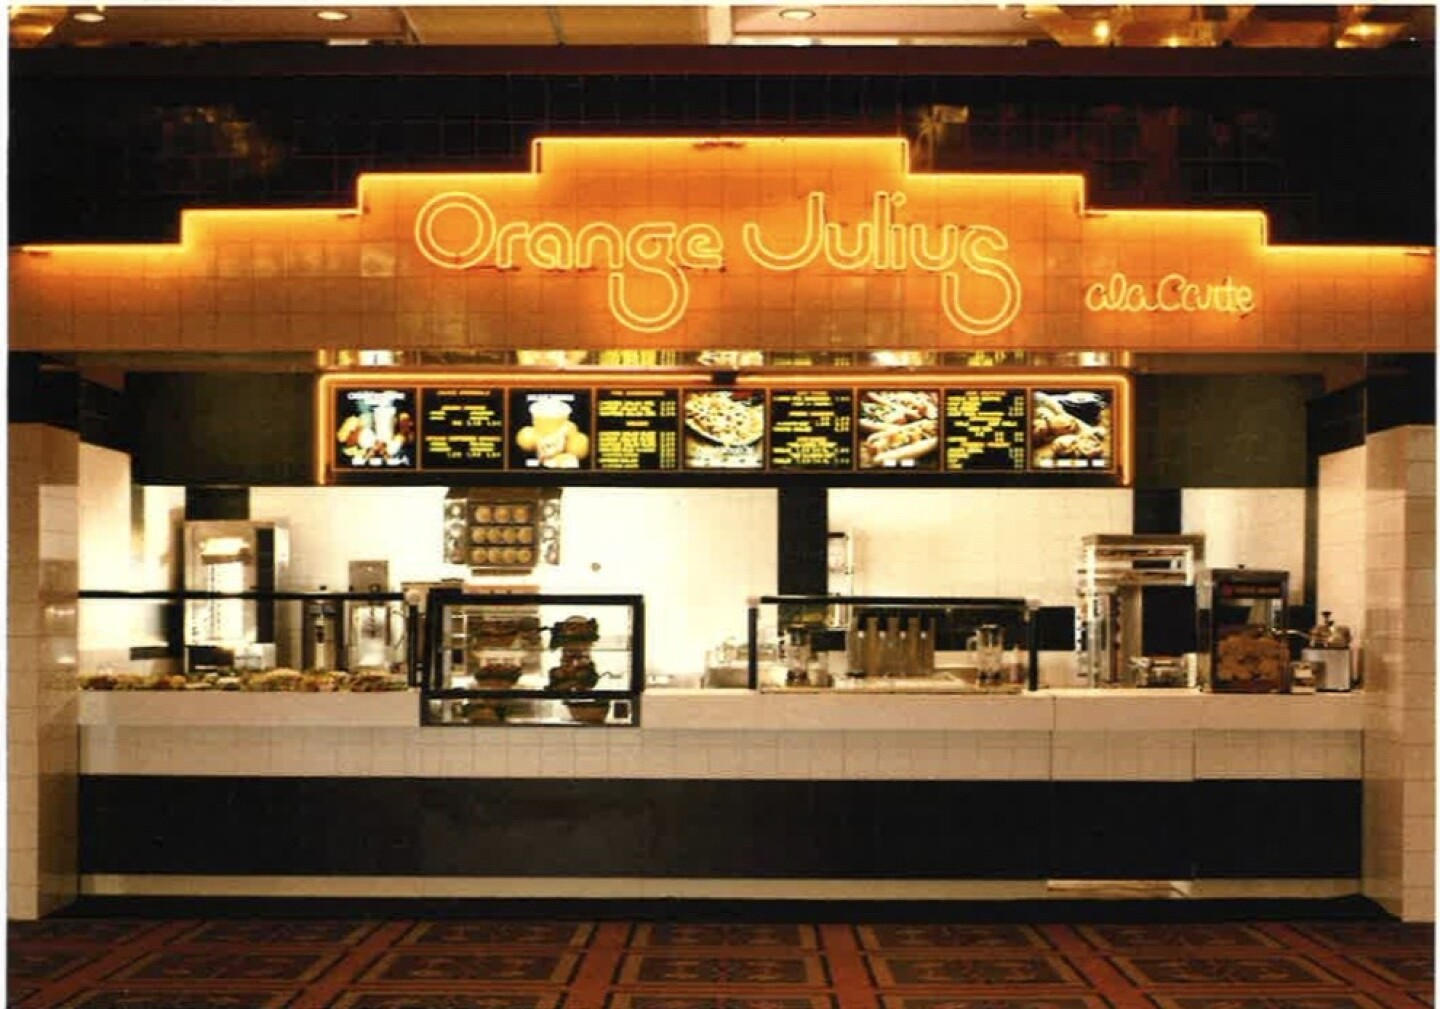 a fast food counter with a menu above it and above that a neon orange sign that reads Orange Julius